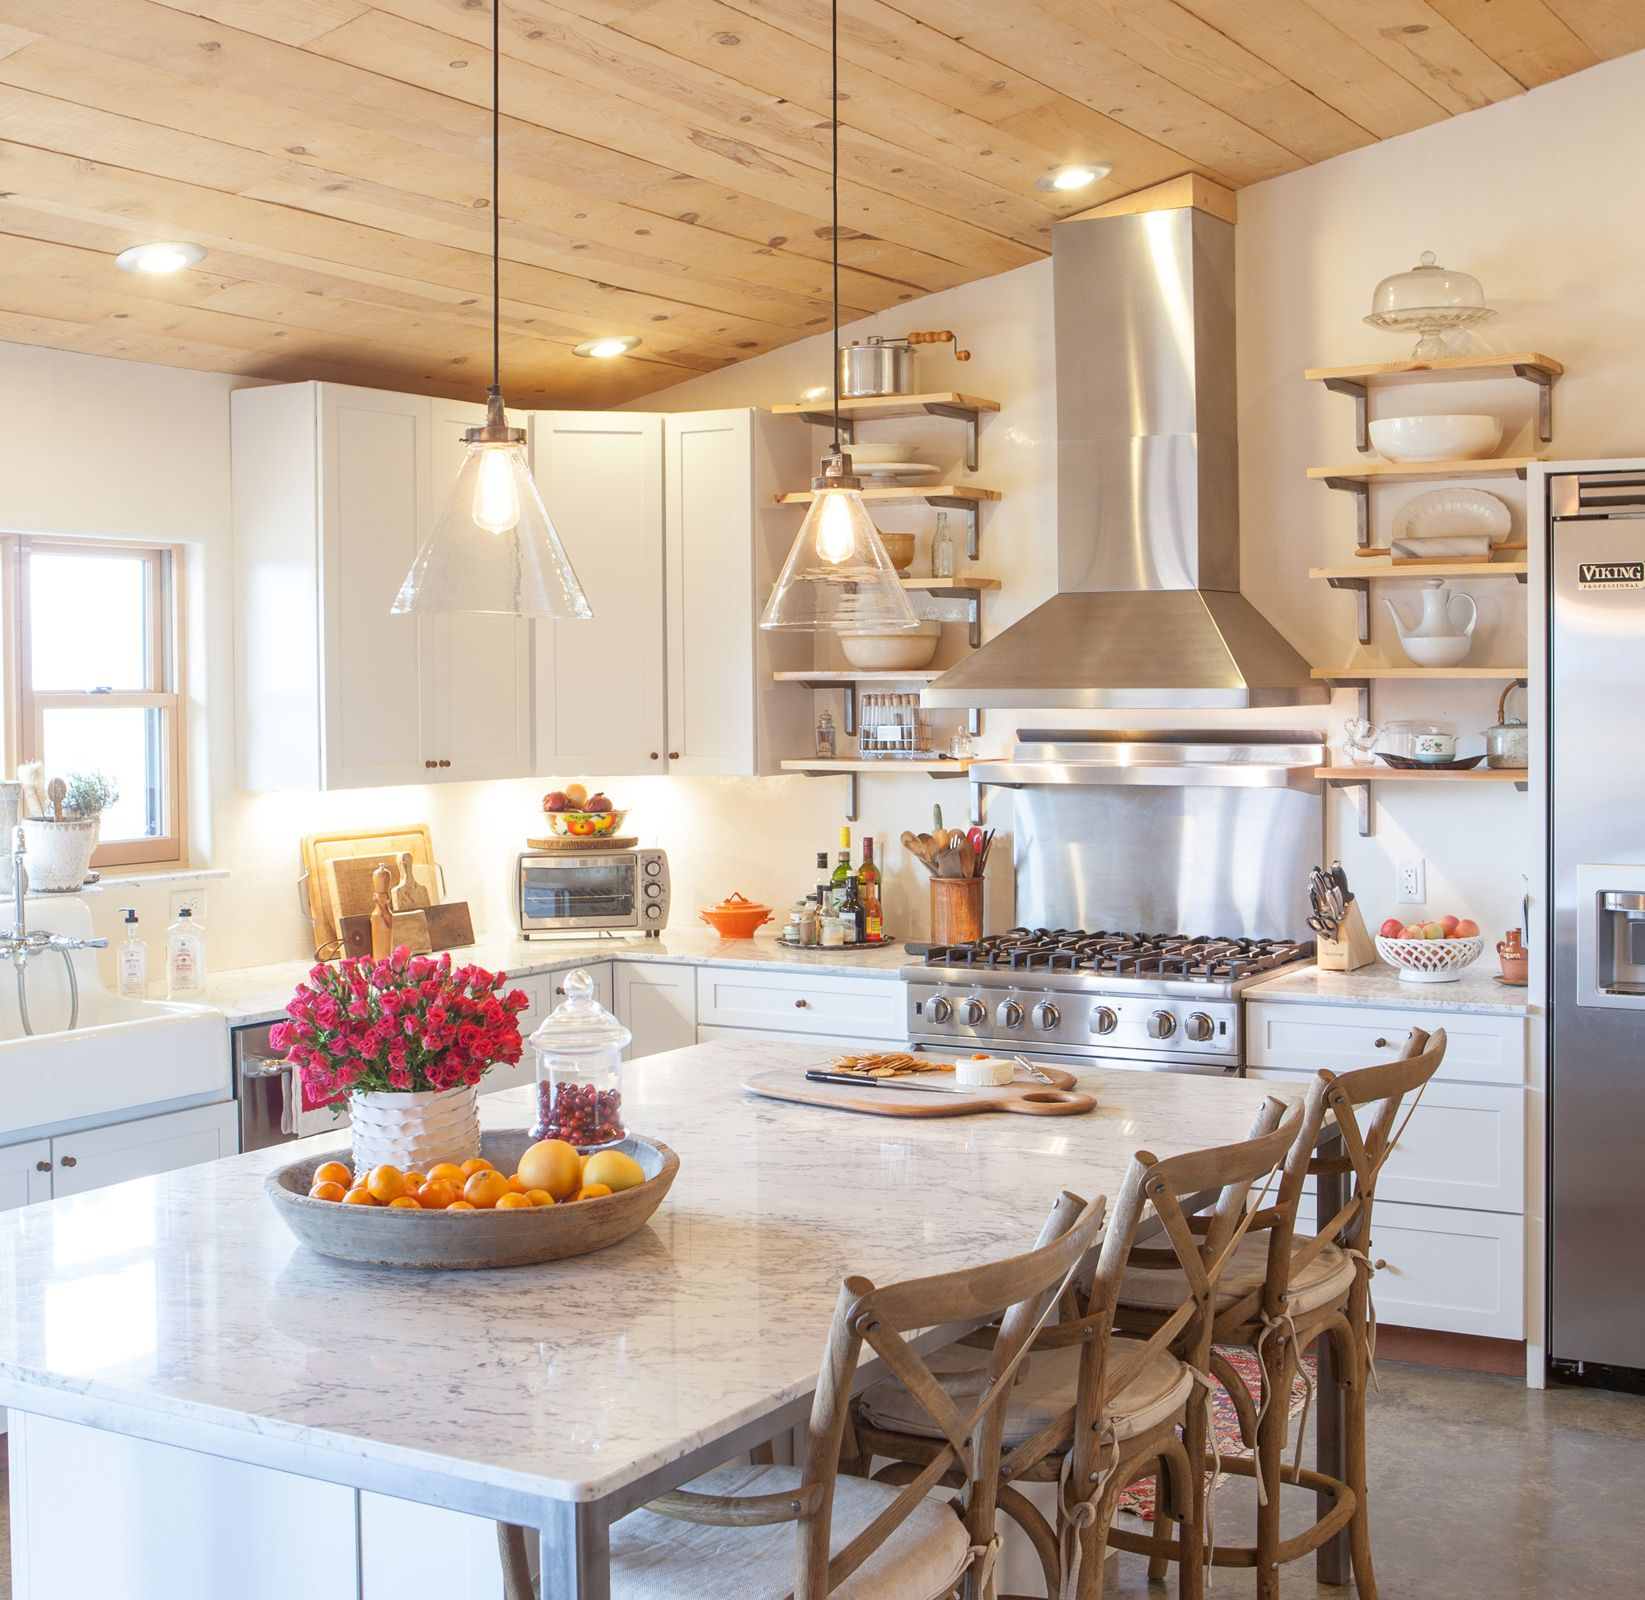 Pin By Modern Sanctuary On Lowell Kitchen Kitchen Layout Scandinavian Kitchen Small Kitchen Layouts